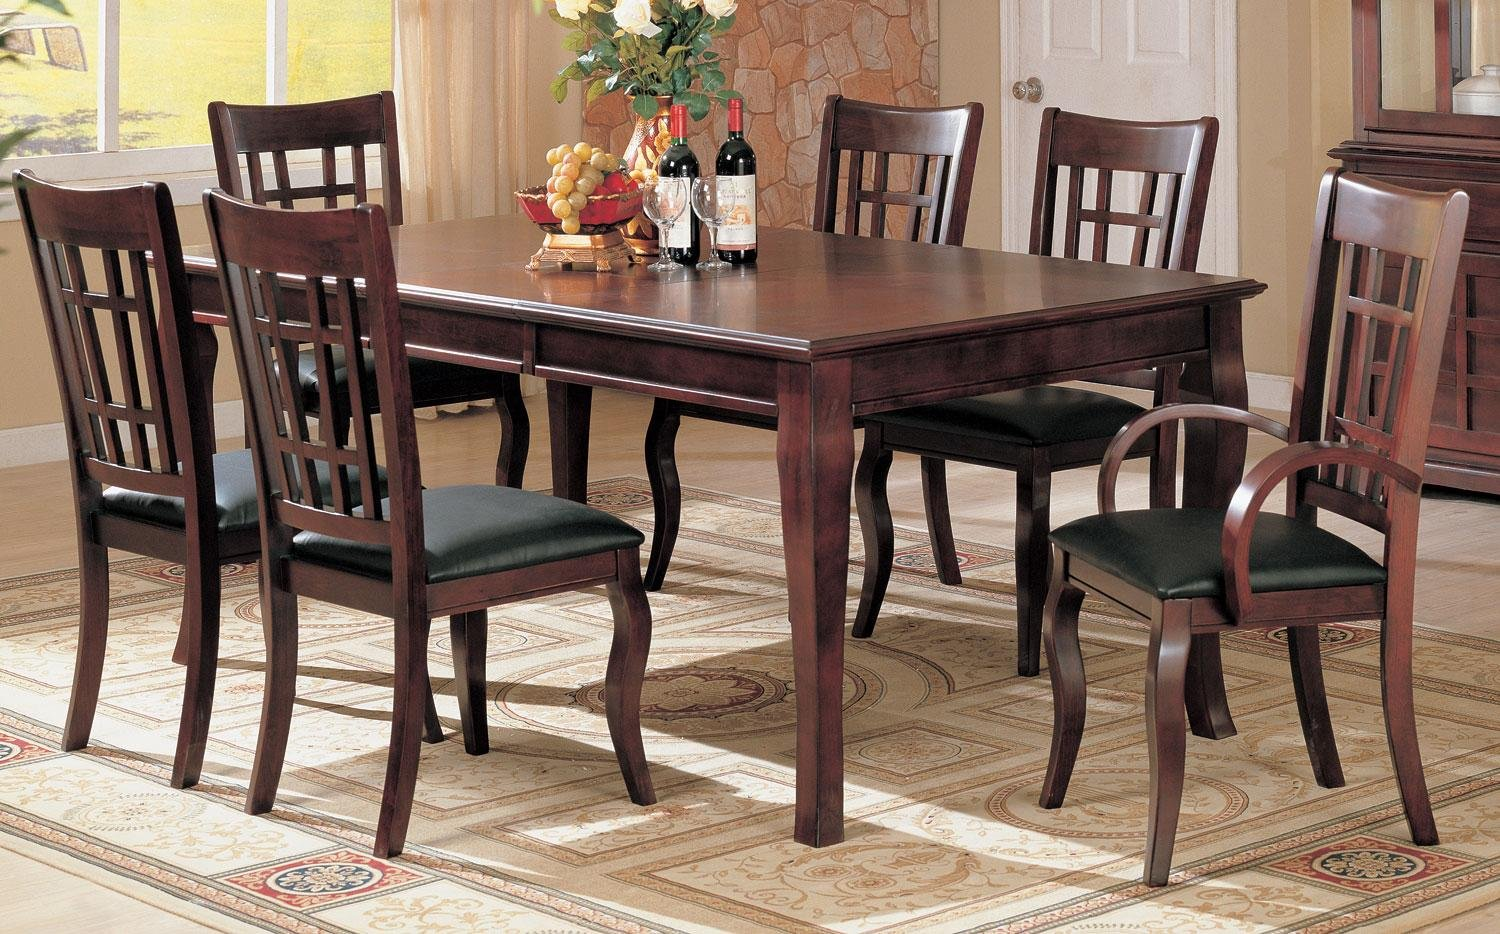 Amazon com 7pc formal dining table chairs set rich cherry finish table chair sets